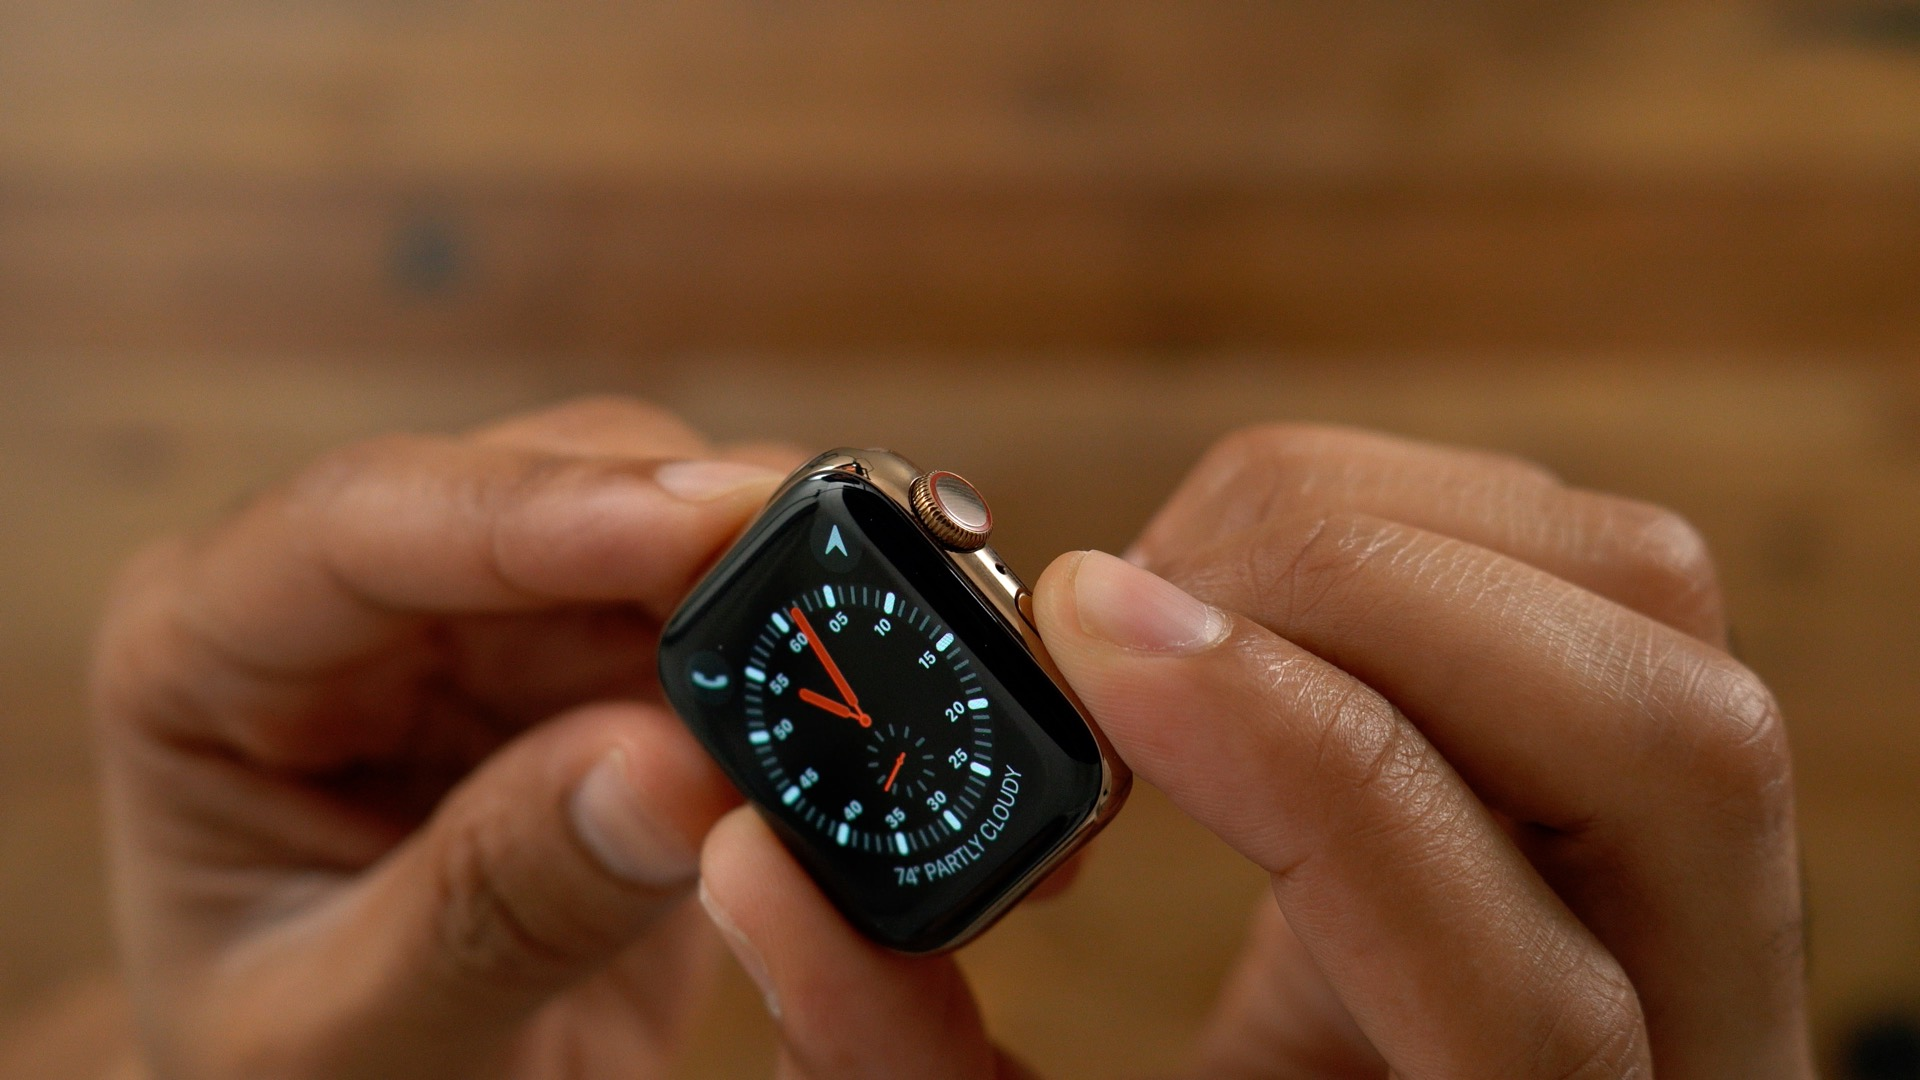 How to change or turn off Apple Watch passcode